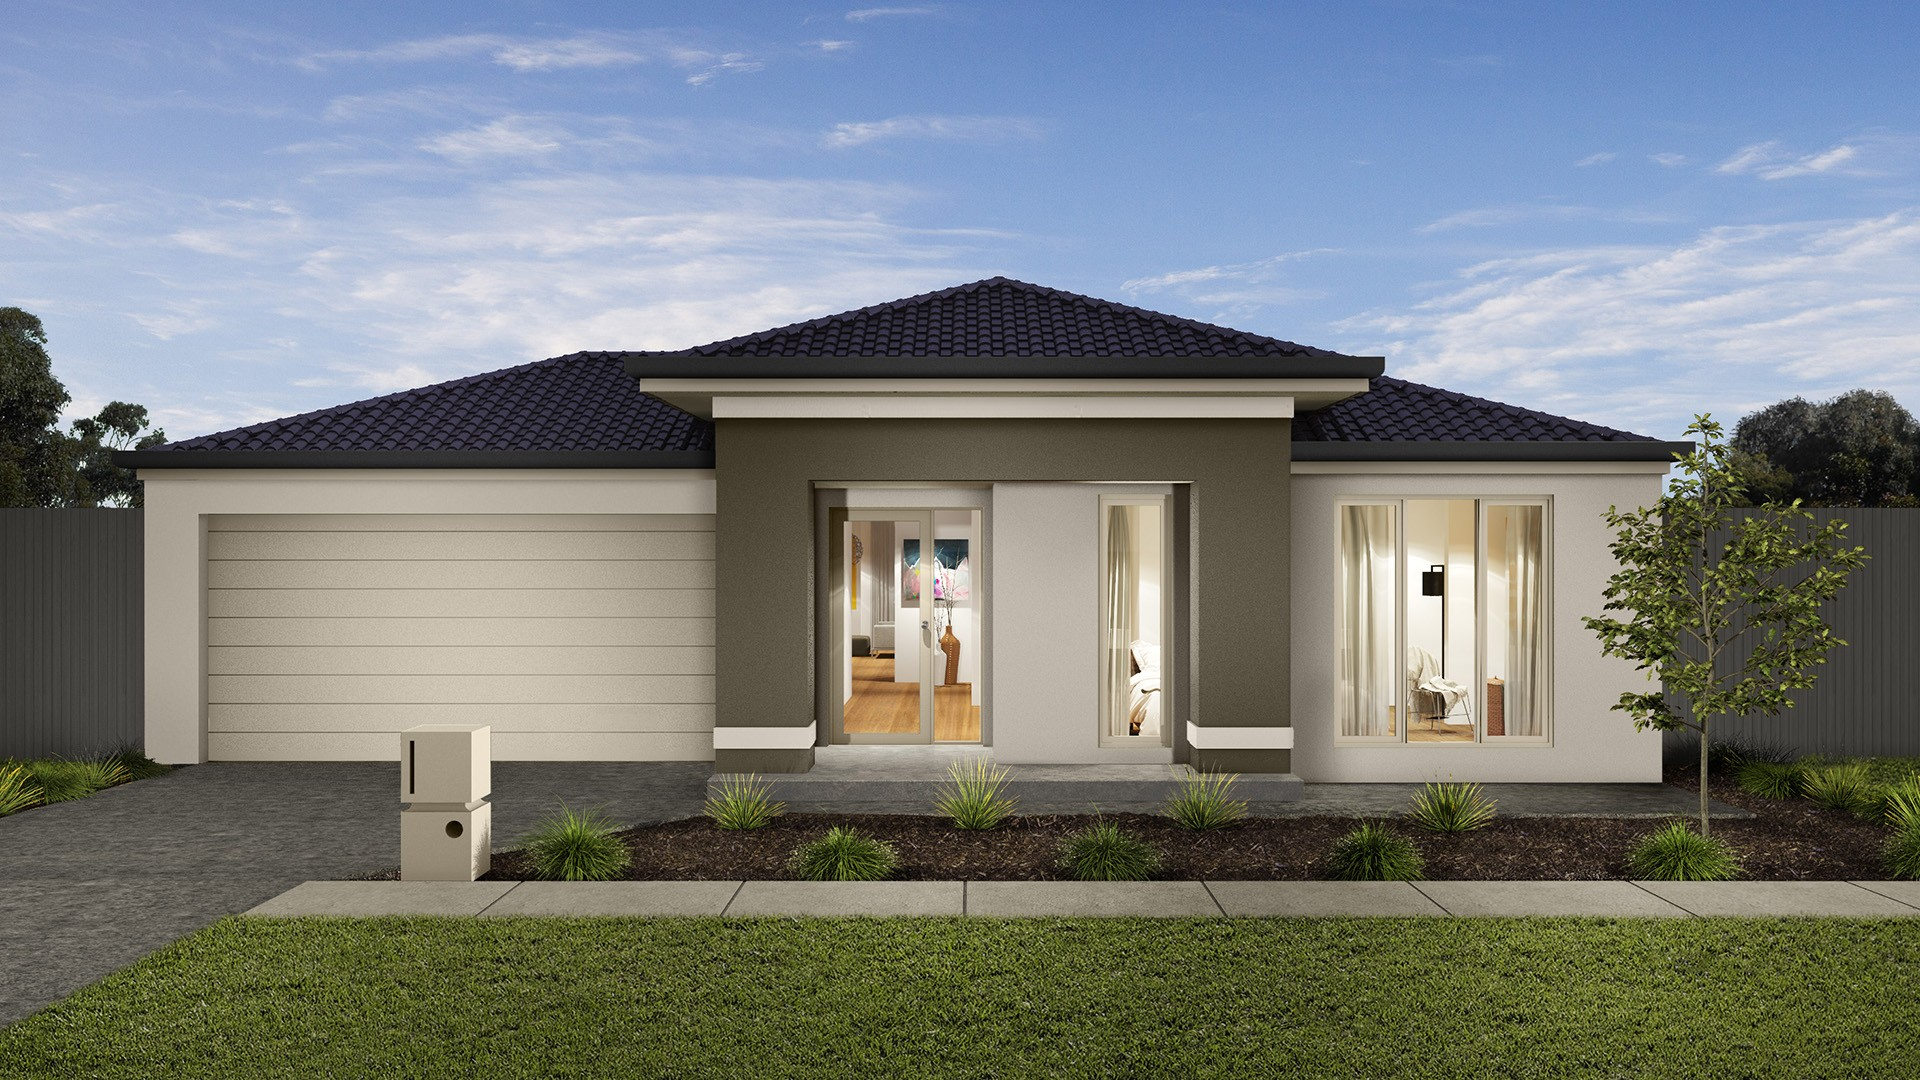 EASYLIVING ARCADIA HEBEL NAPELS 14 Exterior Image 1